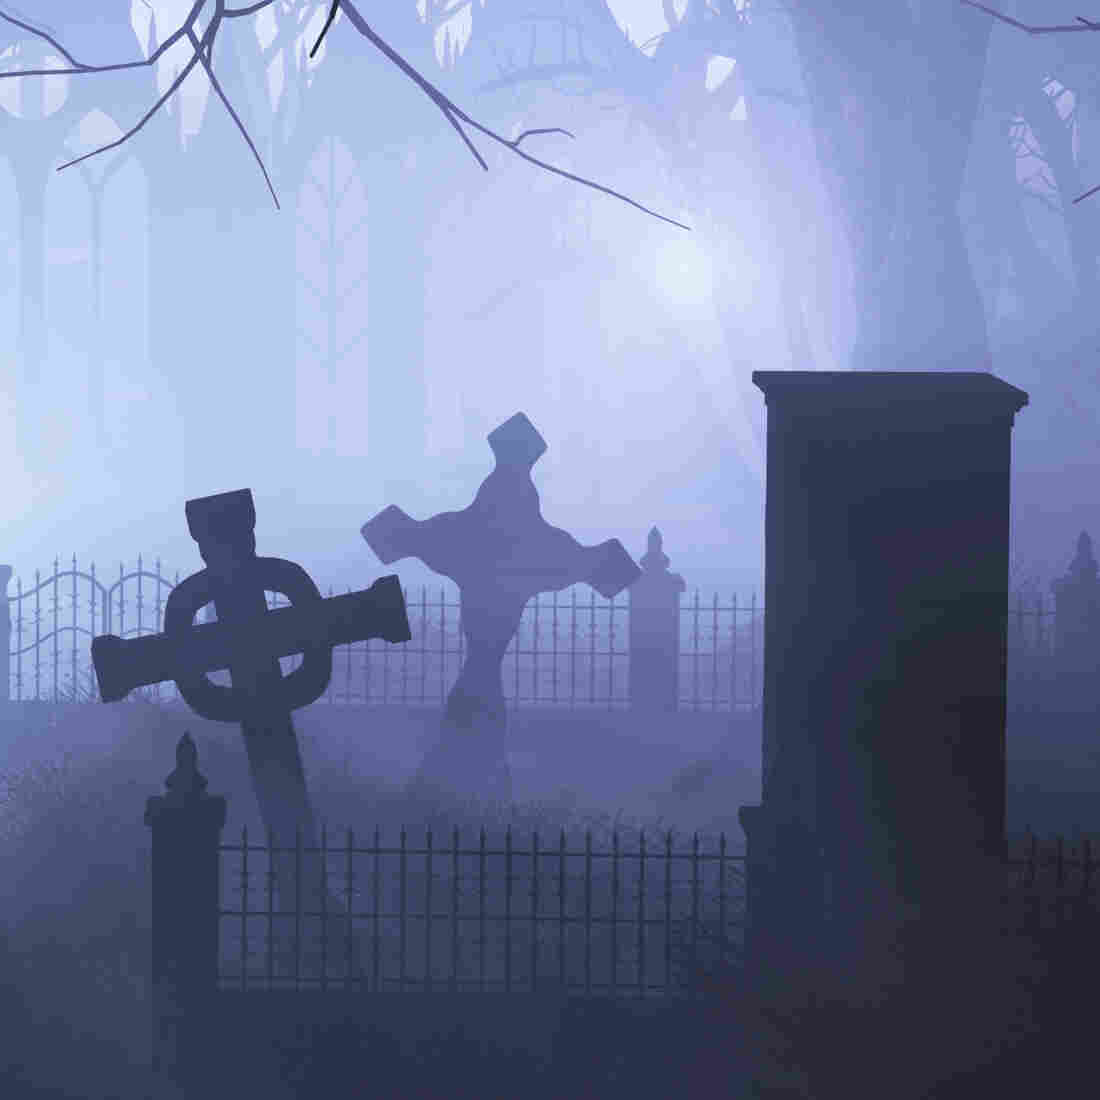 Burial Rights: Who Owns Dead Bodies, Anyway?